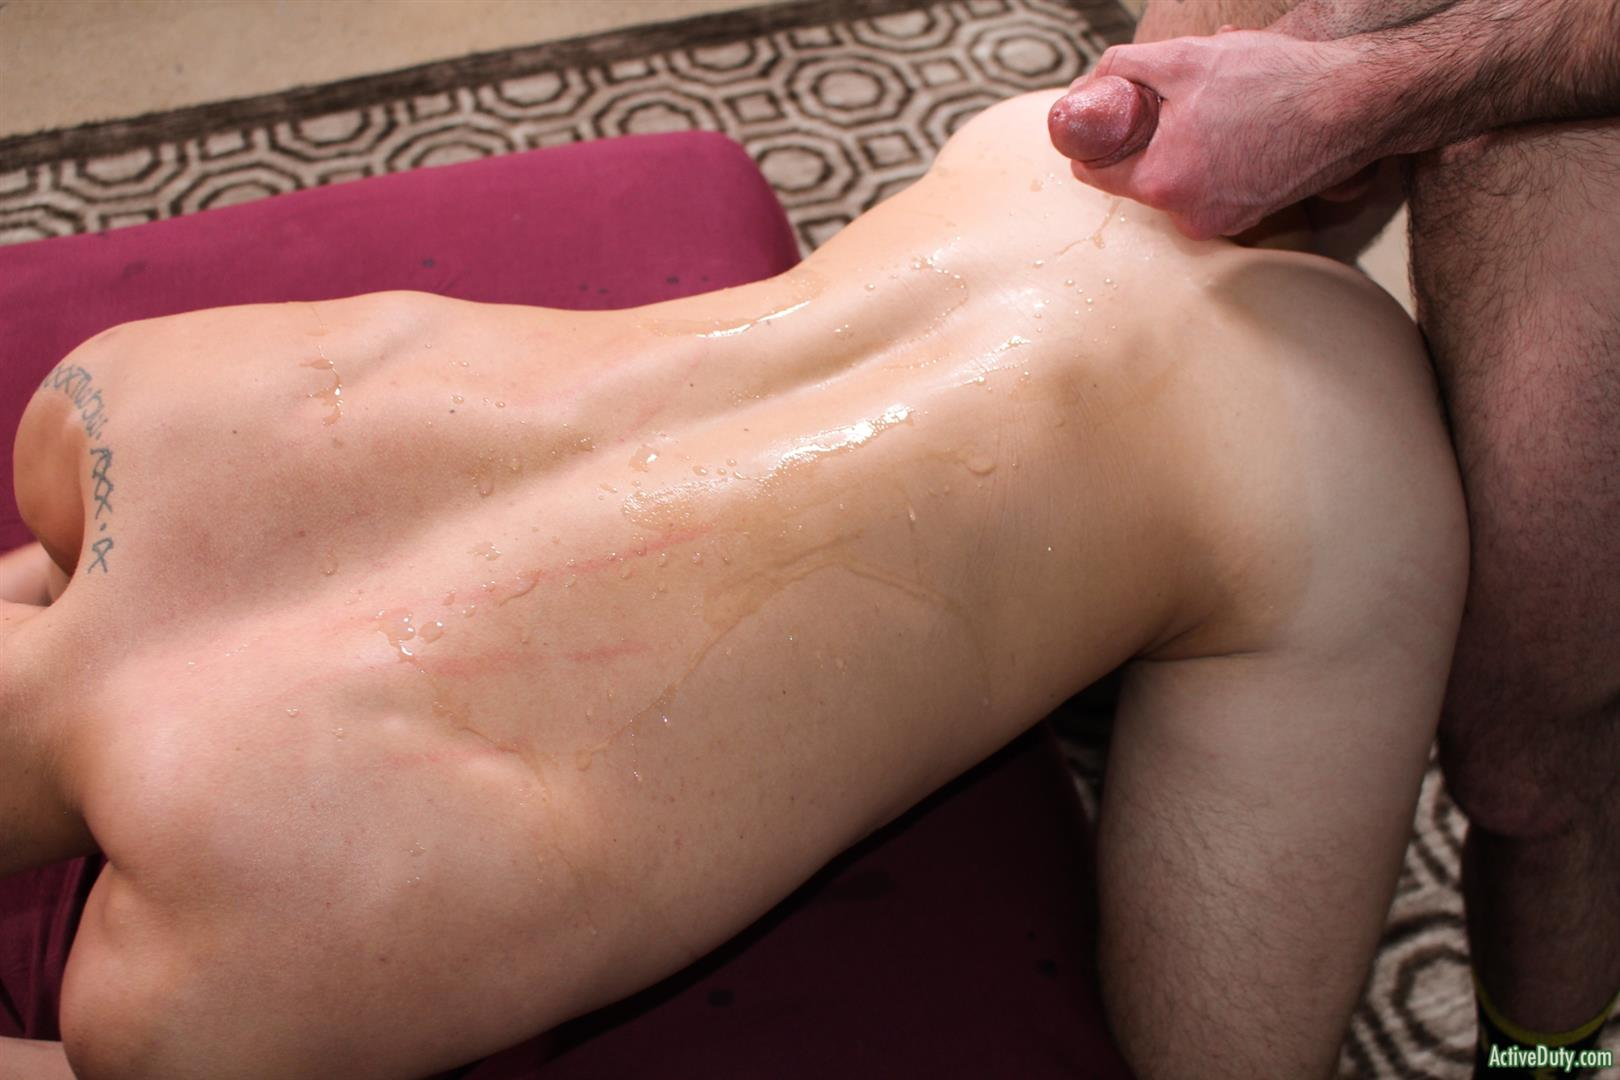 Active Duty Jay Ice and Aston Springs Straight Army Guys Gay Bareback Sex 13 Muscular Straight Army Guys Bareback Fucking For Money